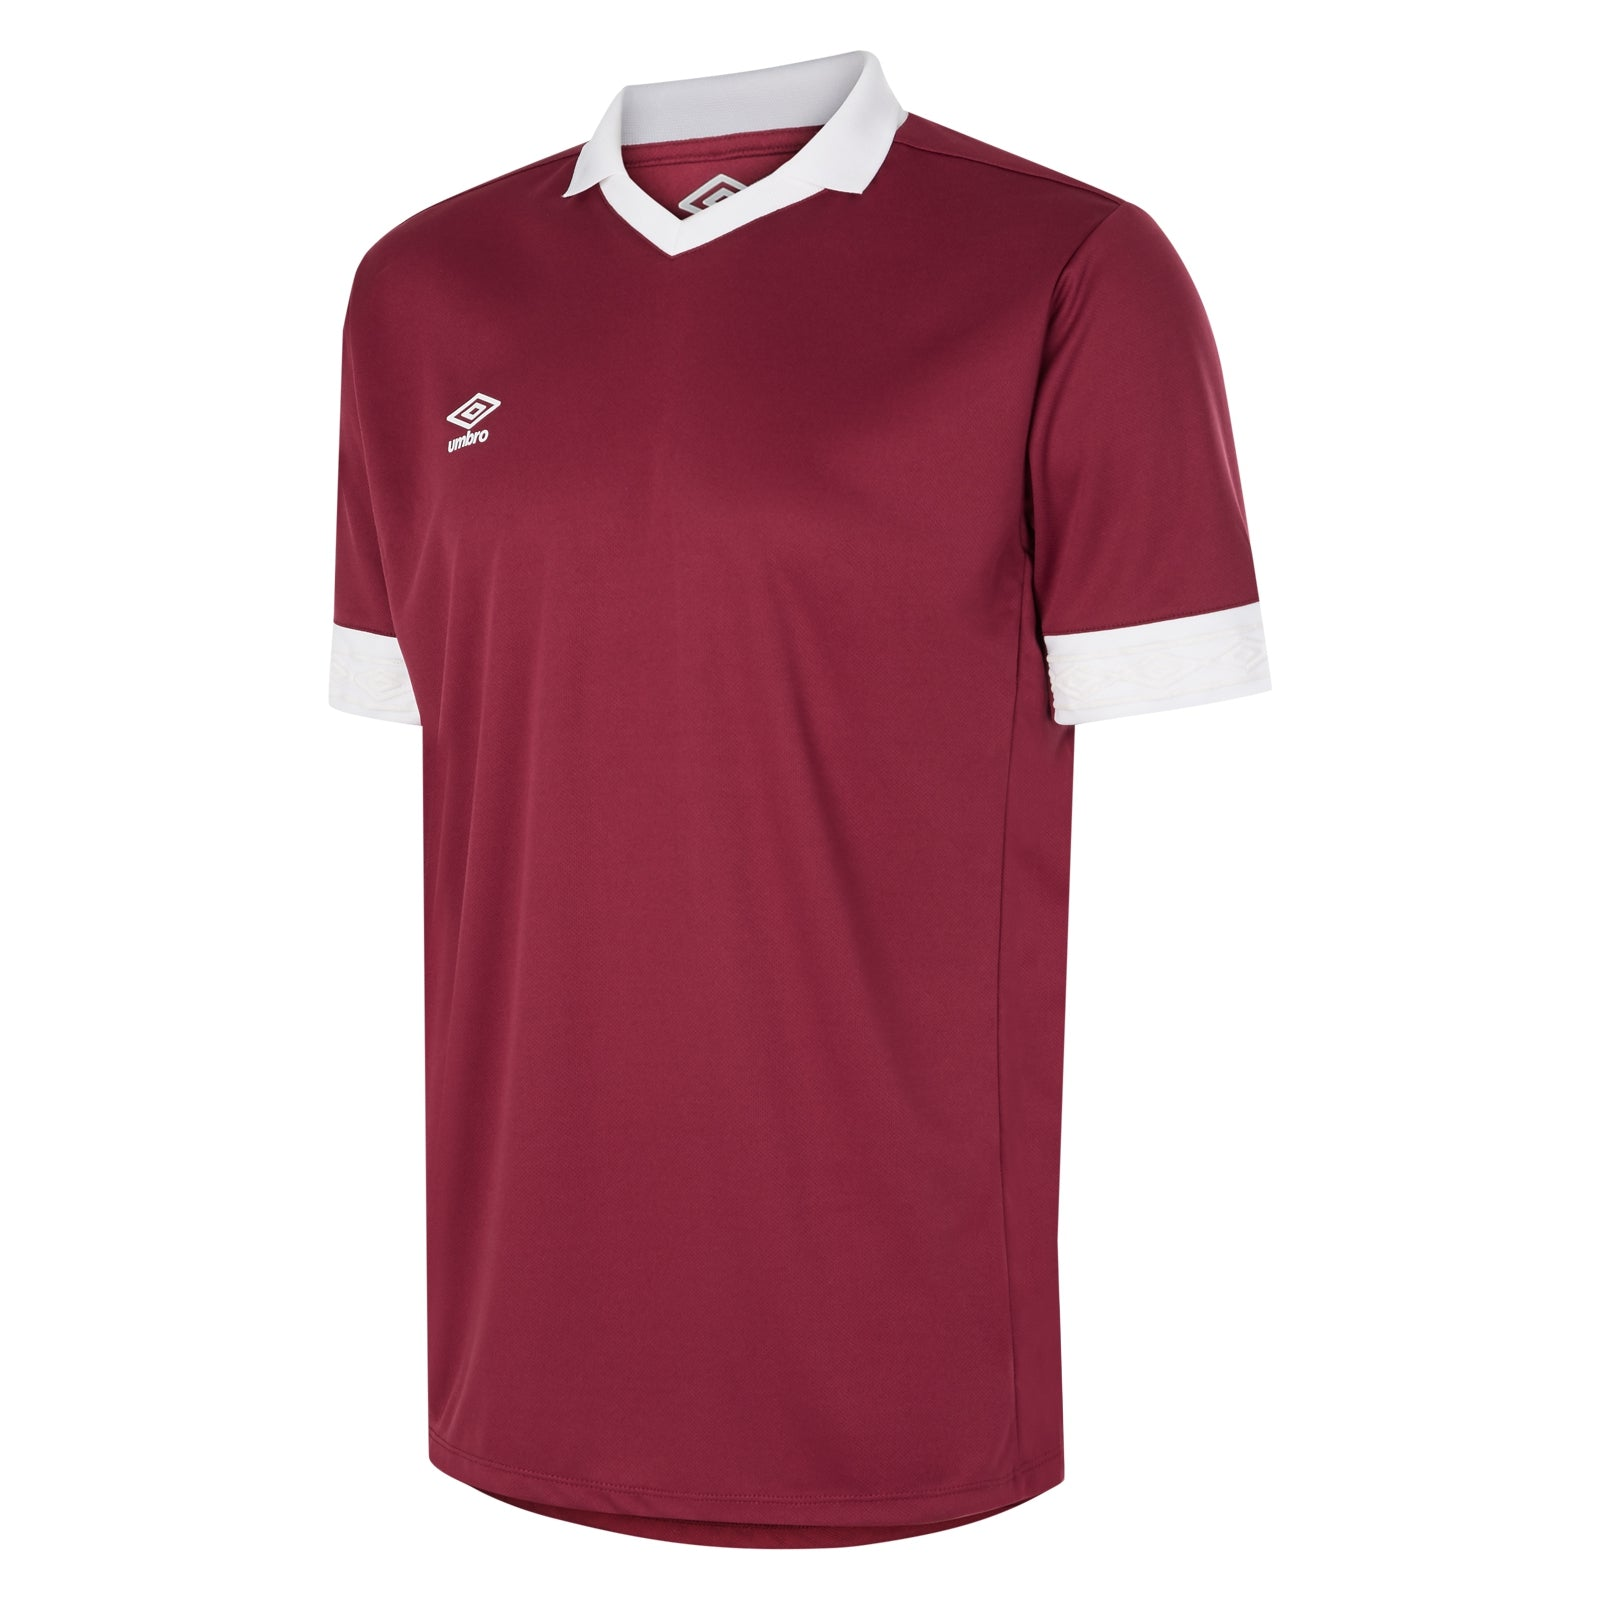 Umbro Tempest jersey short sleeve in new claret with contrast white collar and cuff